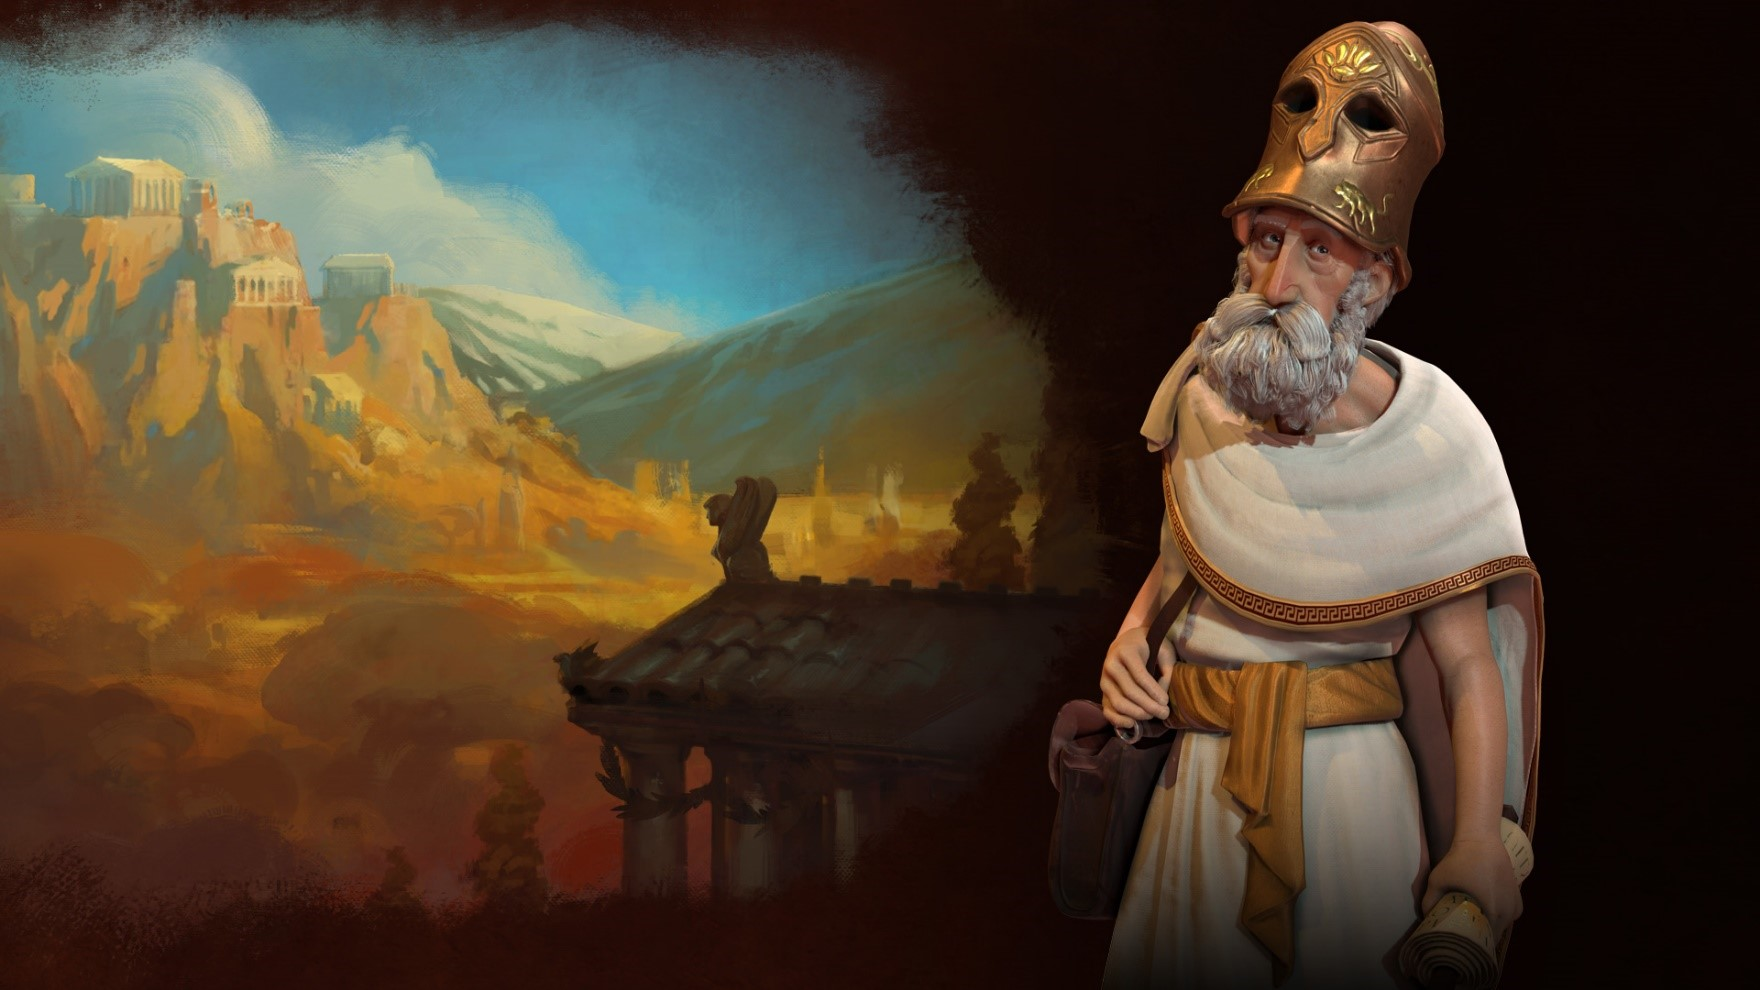 Pericles civilization vi ban